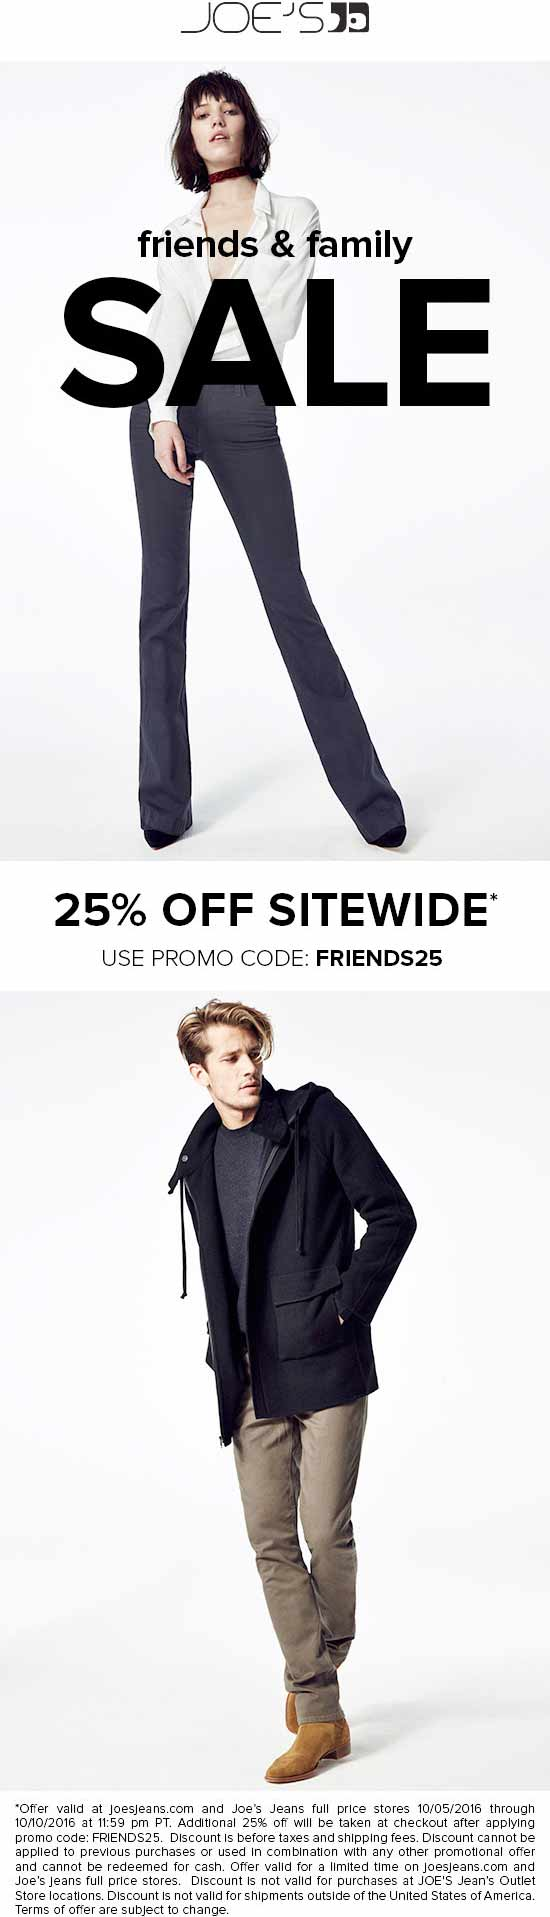 Joes Jeans Coupon September 2017 25% of at Joes Jeans, or online via promo code FRIENDS25